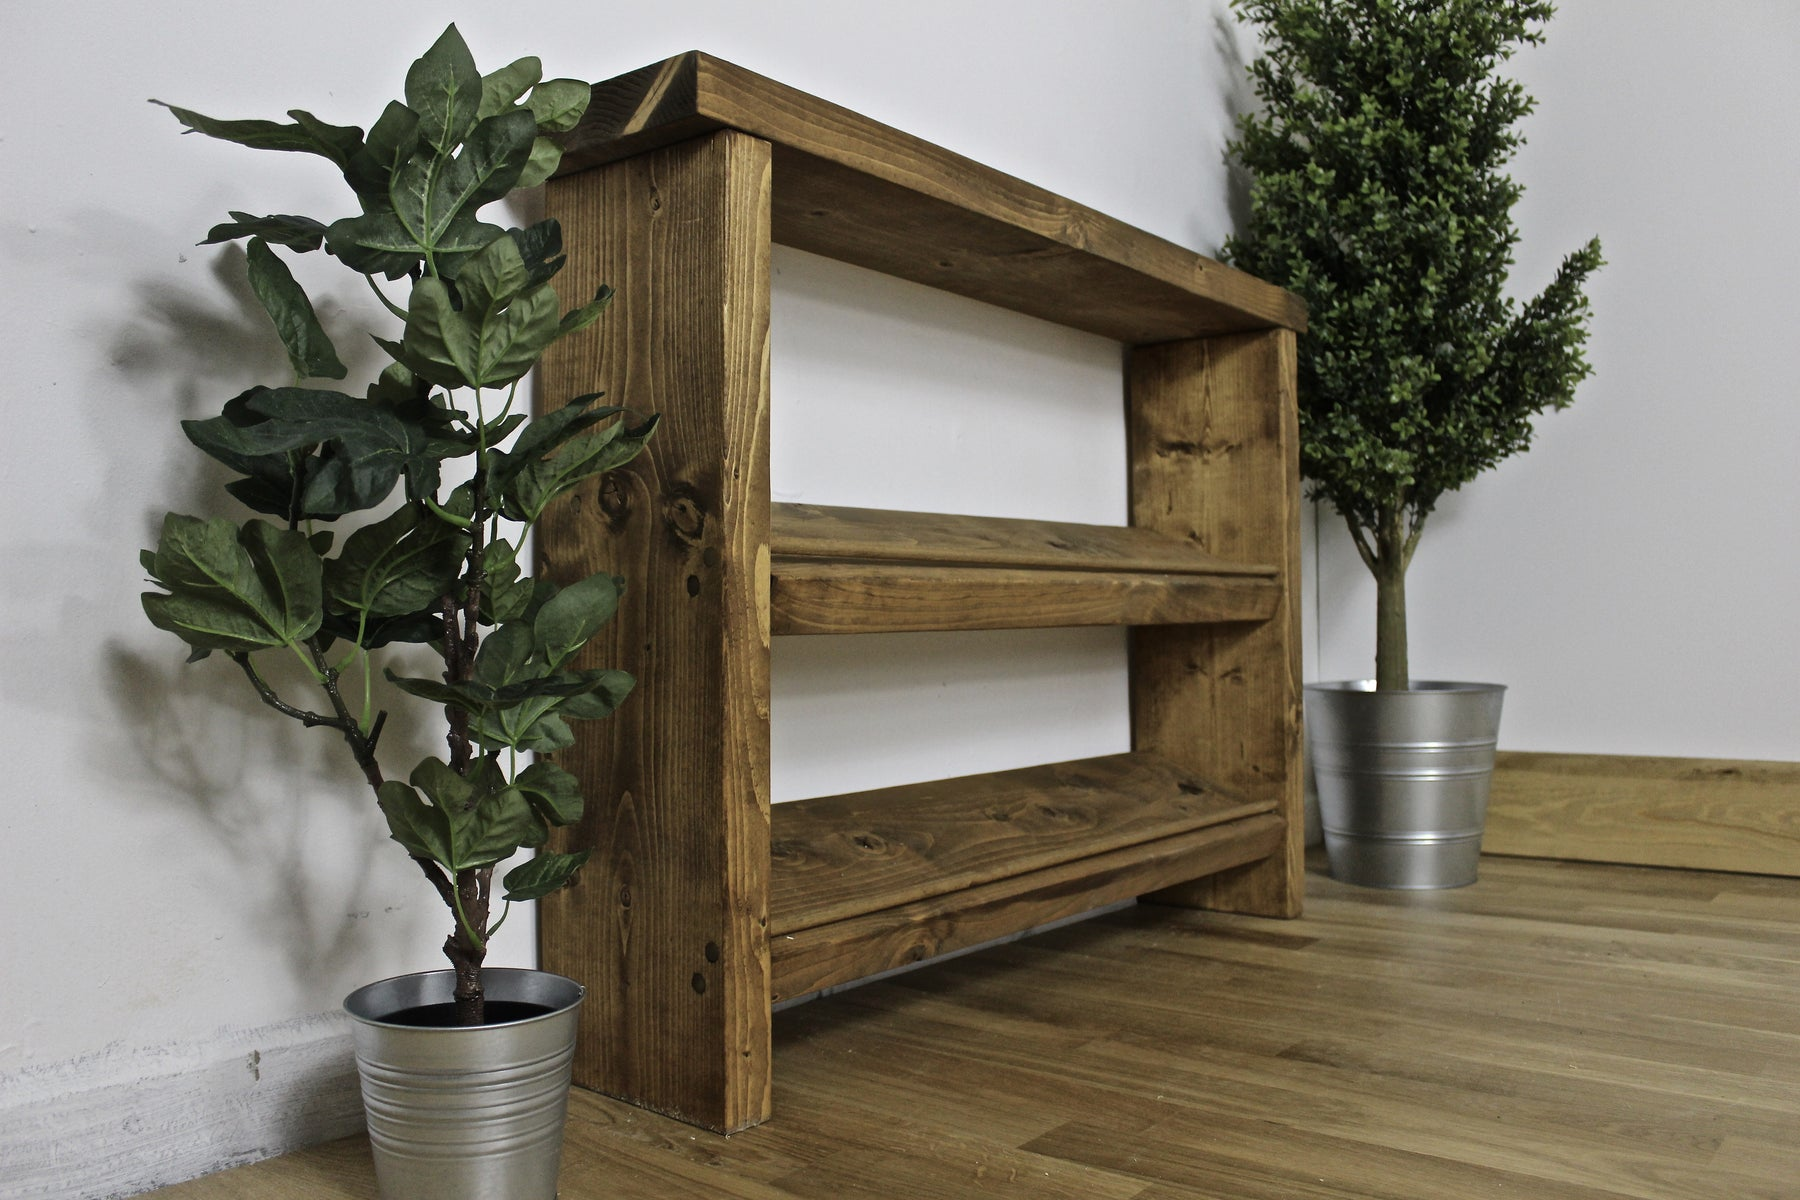 Rustic Redlynch Shoe Rack handcrafted by new forest rustic furniture and finished in a dark oak finish.